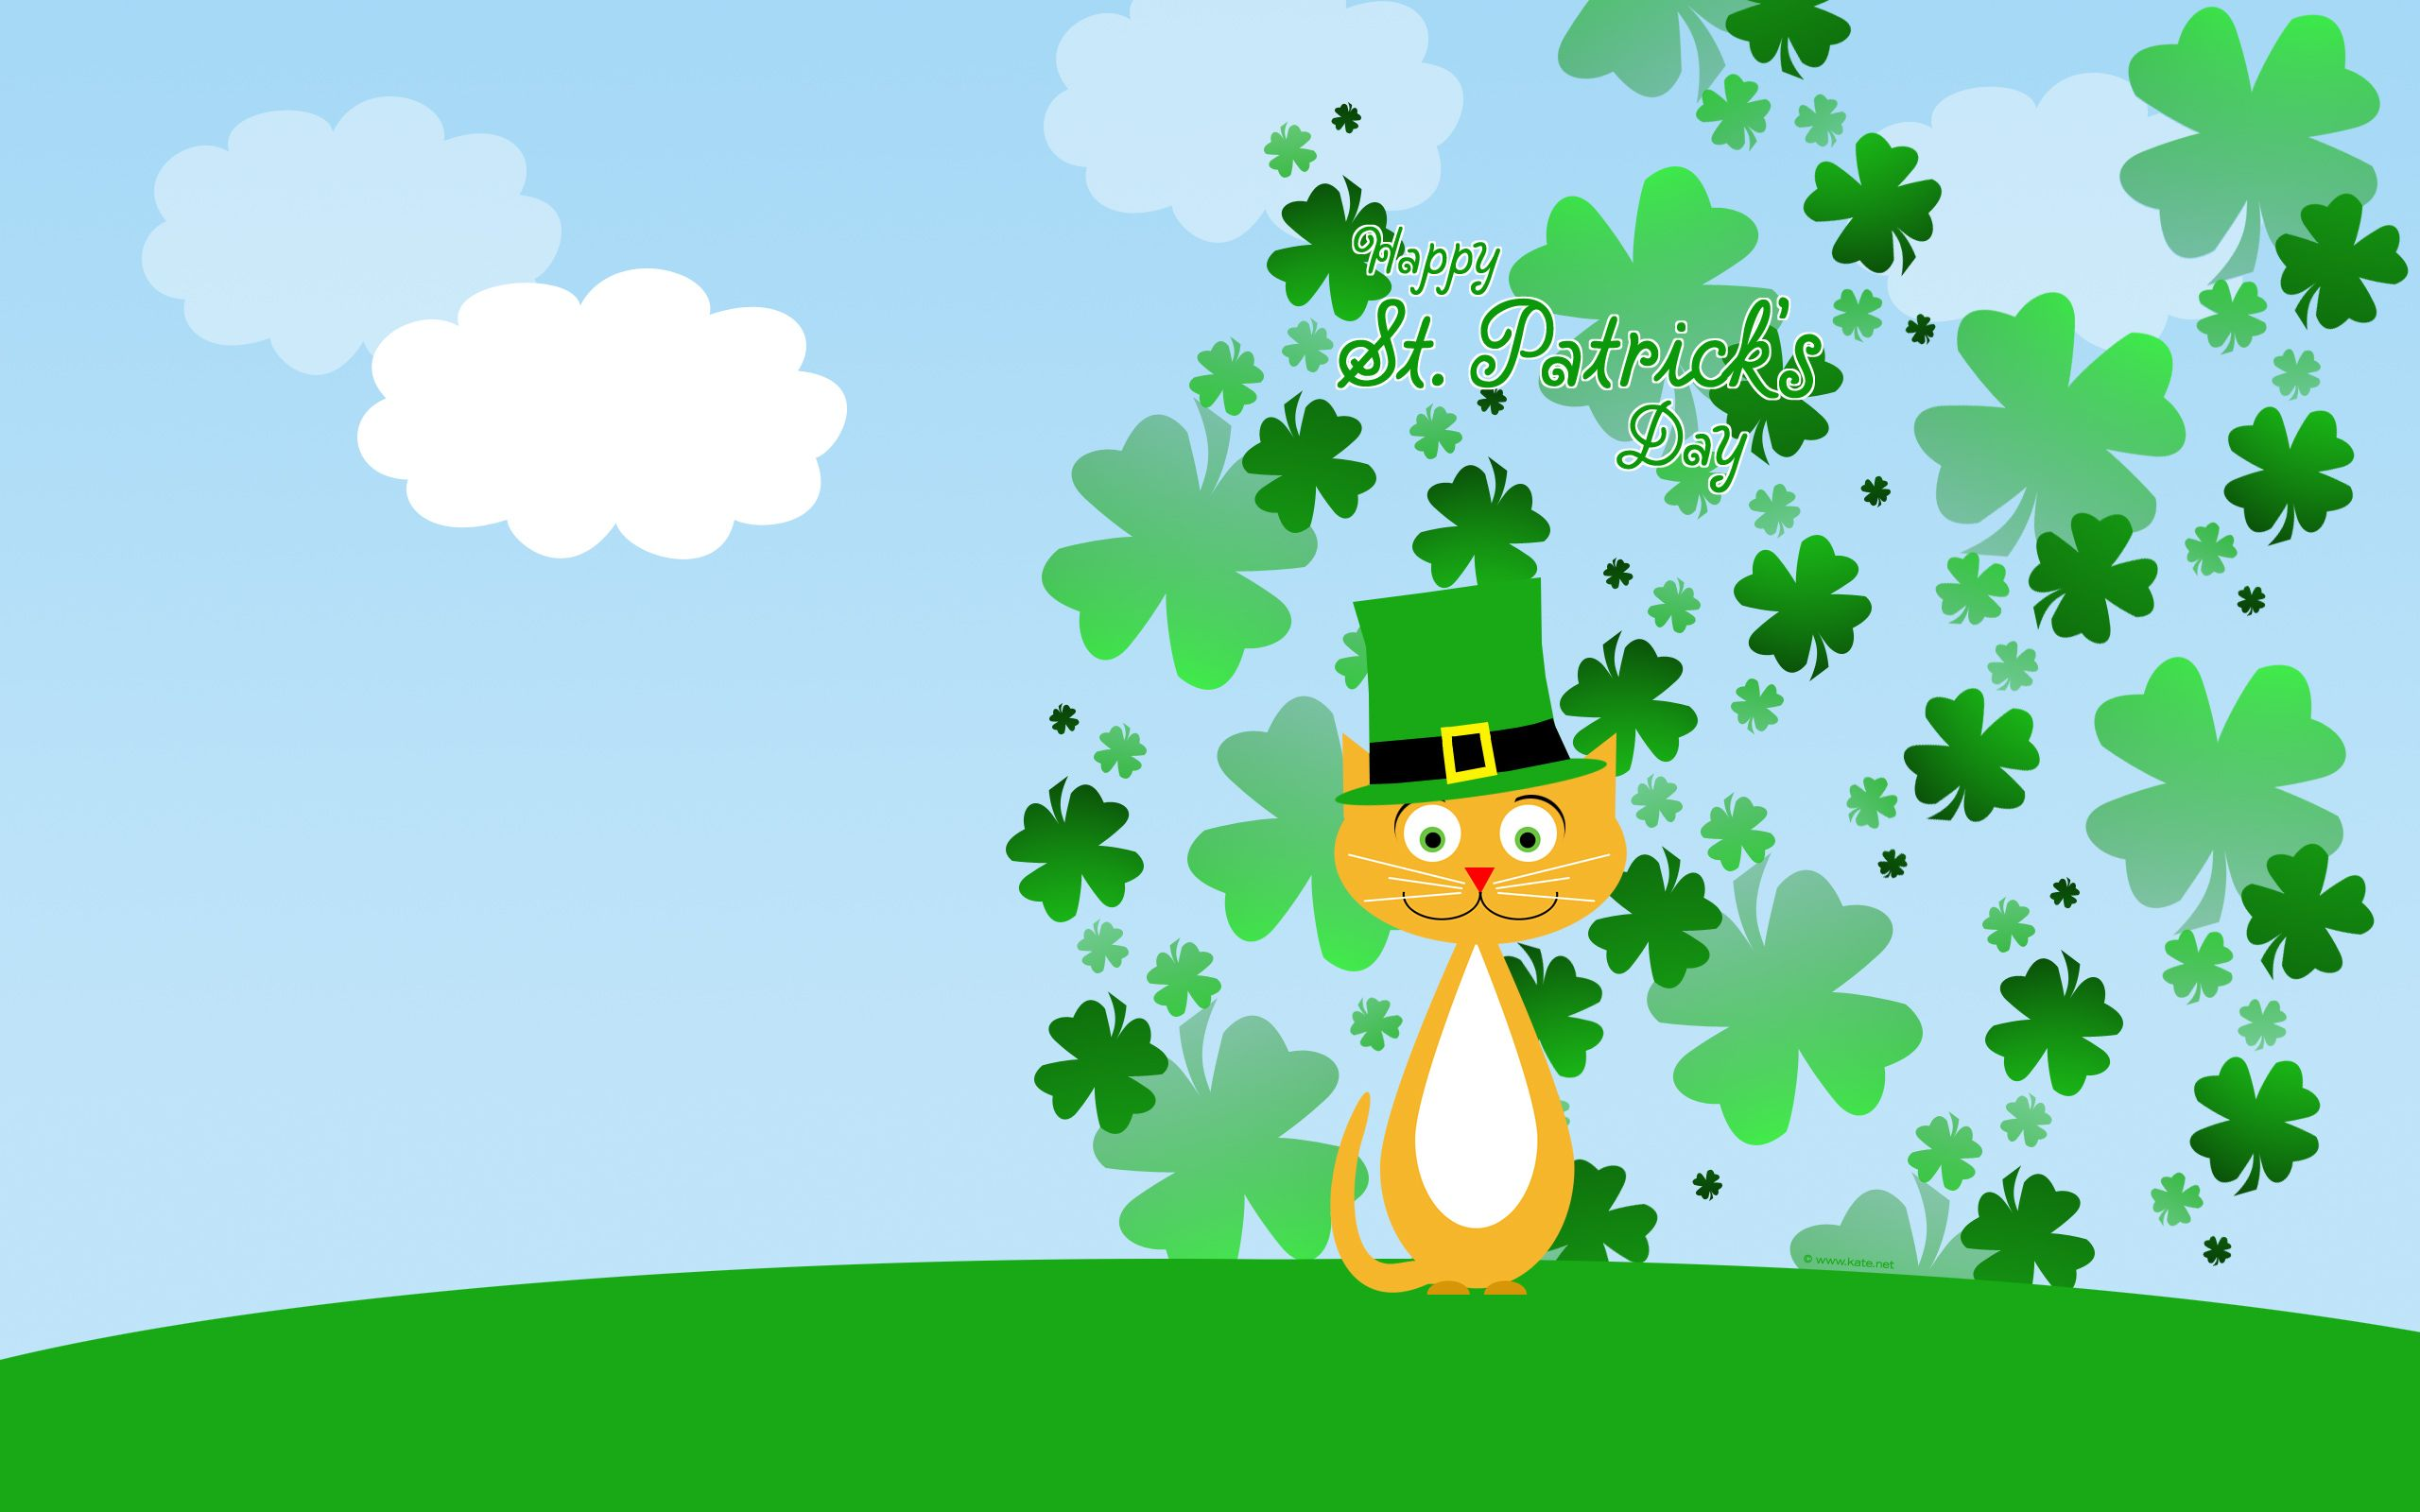 st patrick day shamrocks hqfx wallpapers for free